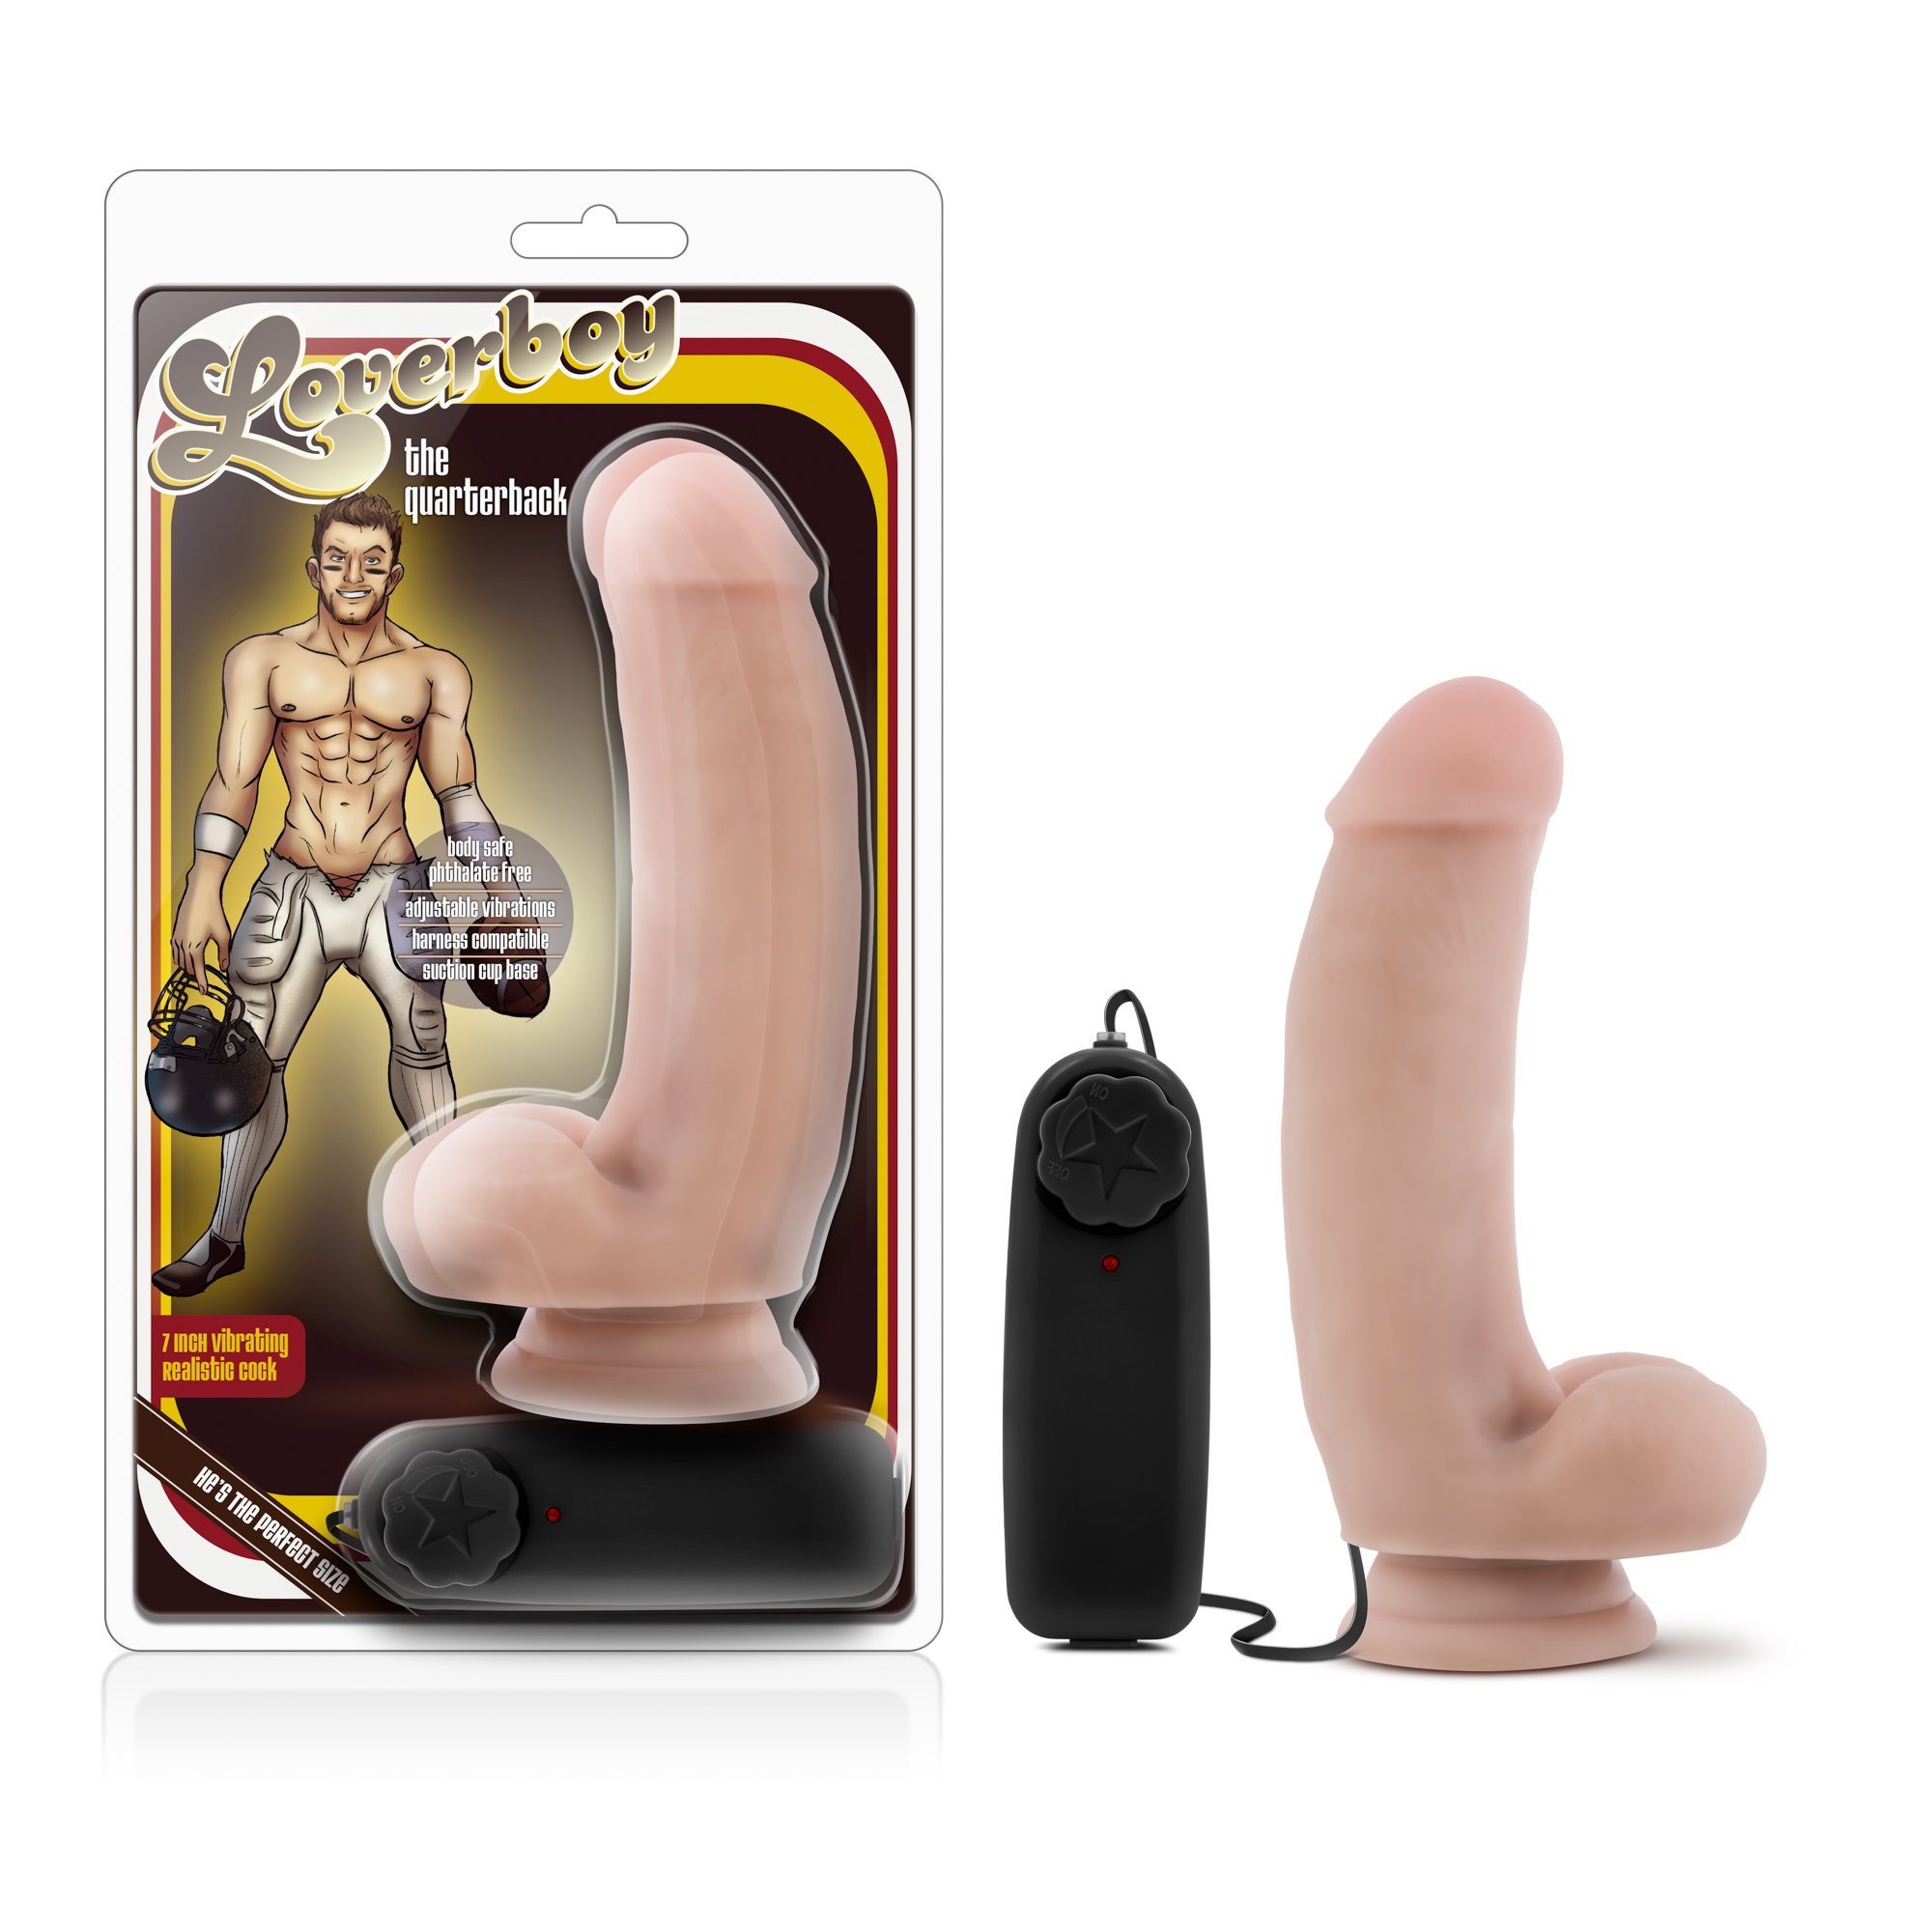 Loverboy - The Quarterback - 7 inch Vibrating Realistic Cock - Vanilla